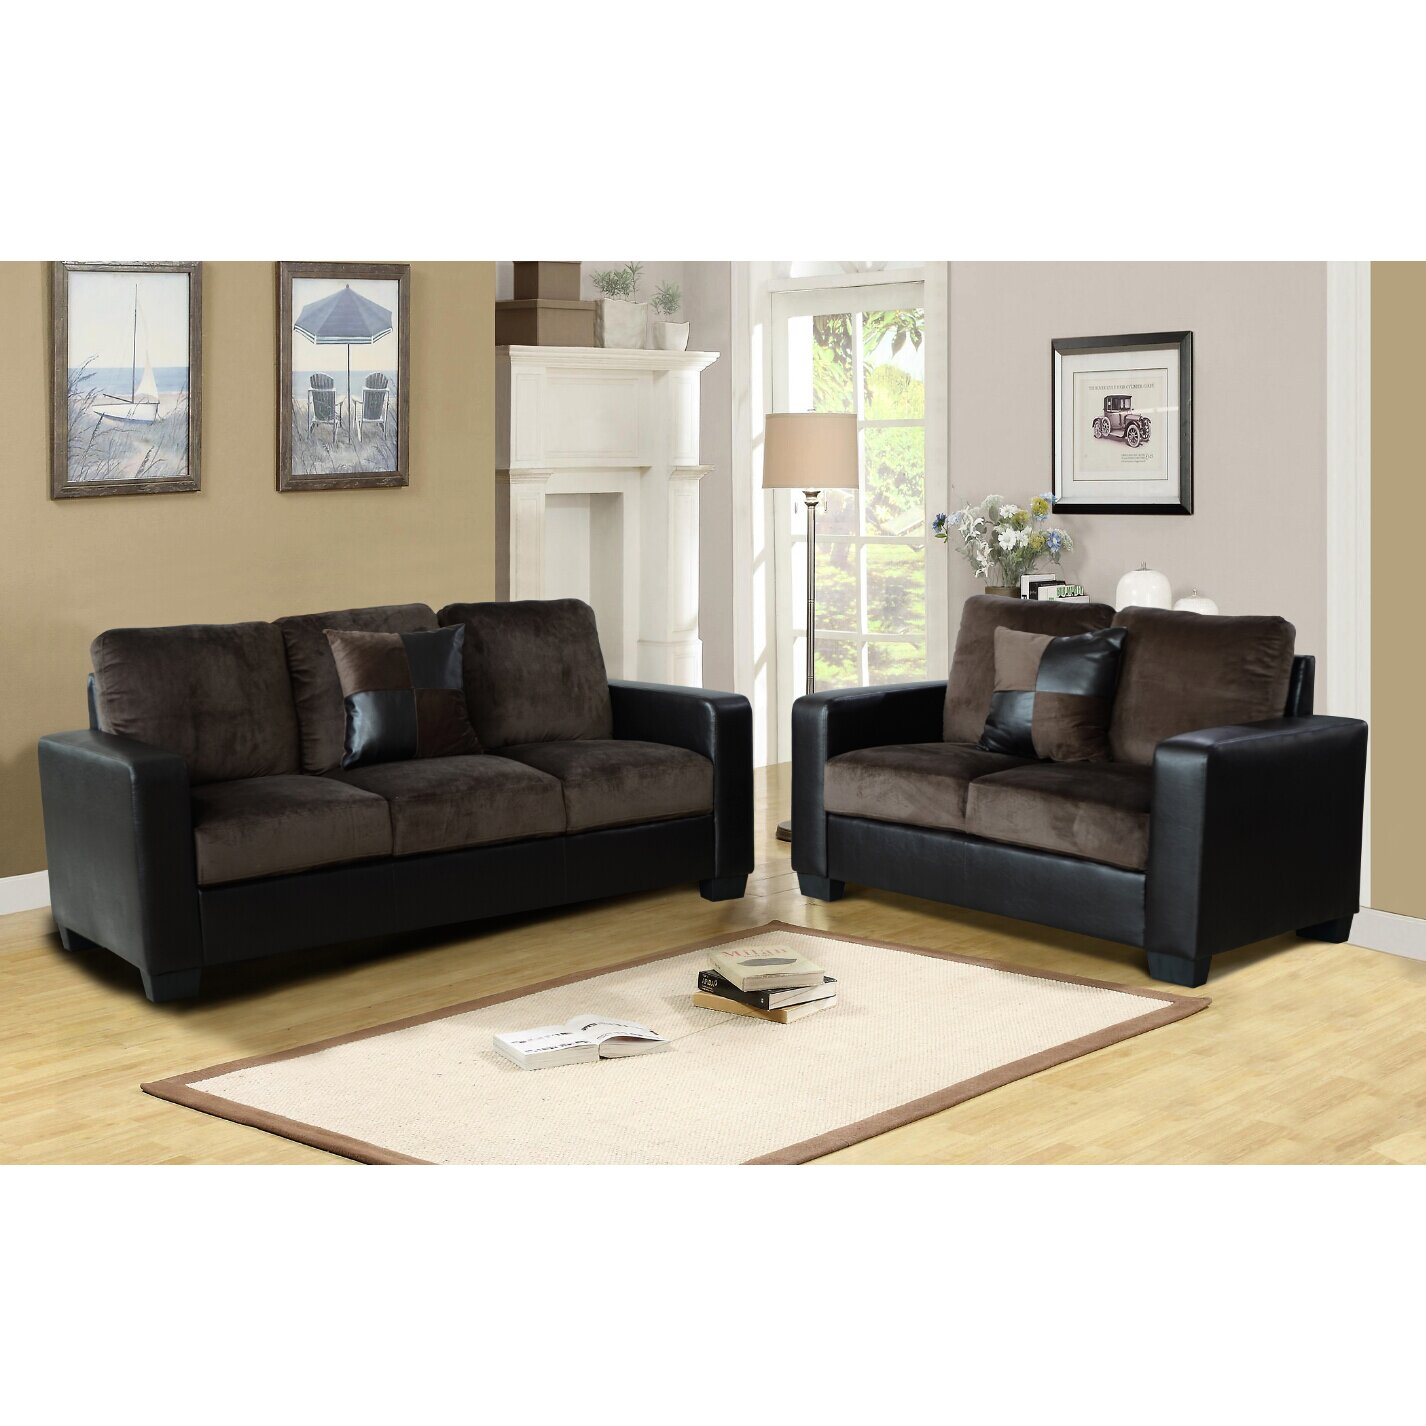 Beverly Fine Furniture Della 2 Piece Living Room Set Reviews